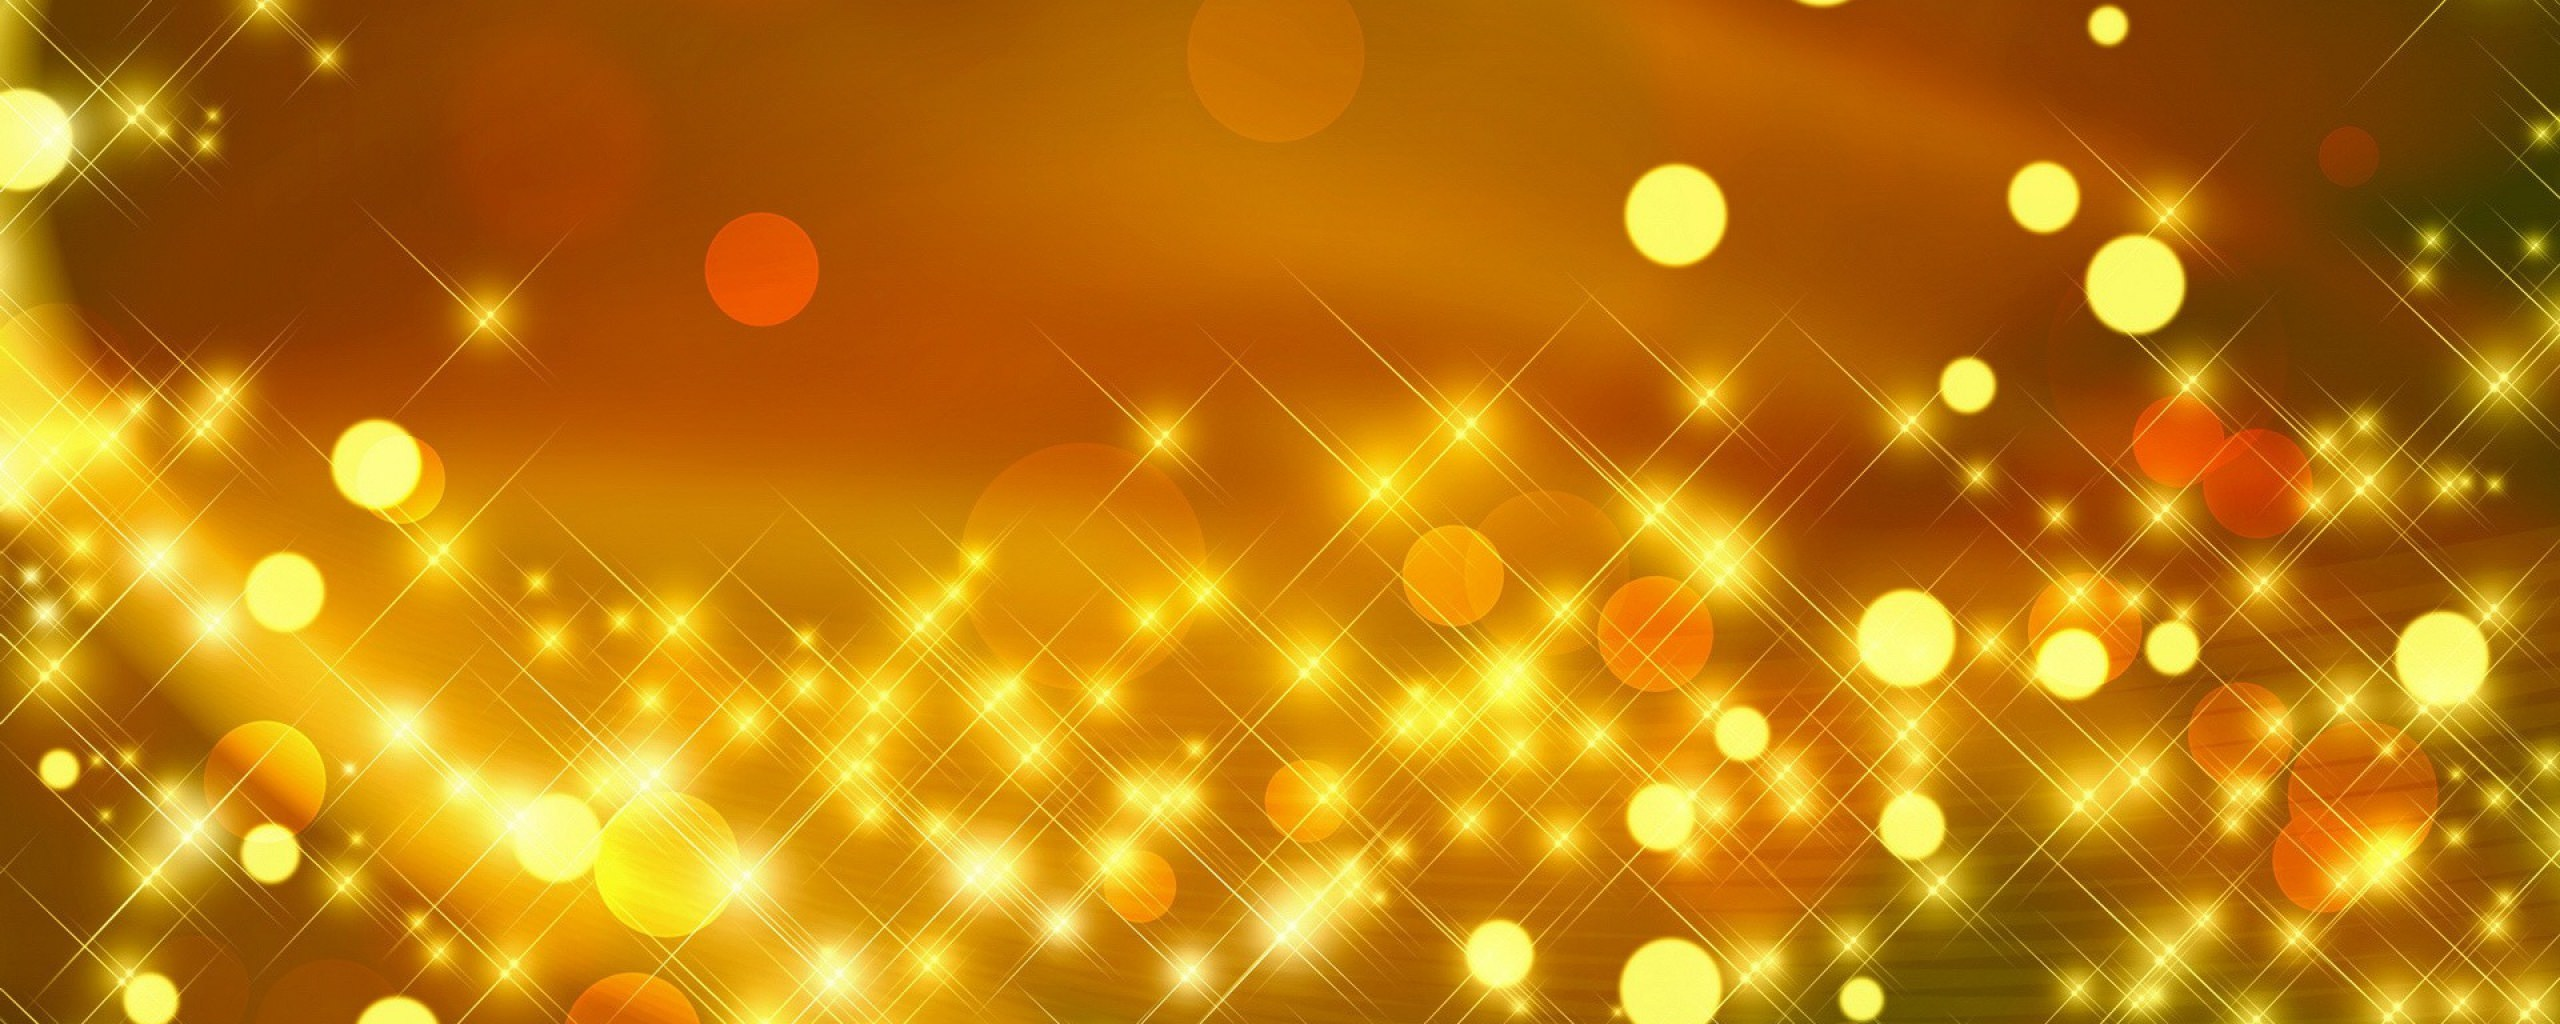 Gold Shiny Background